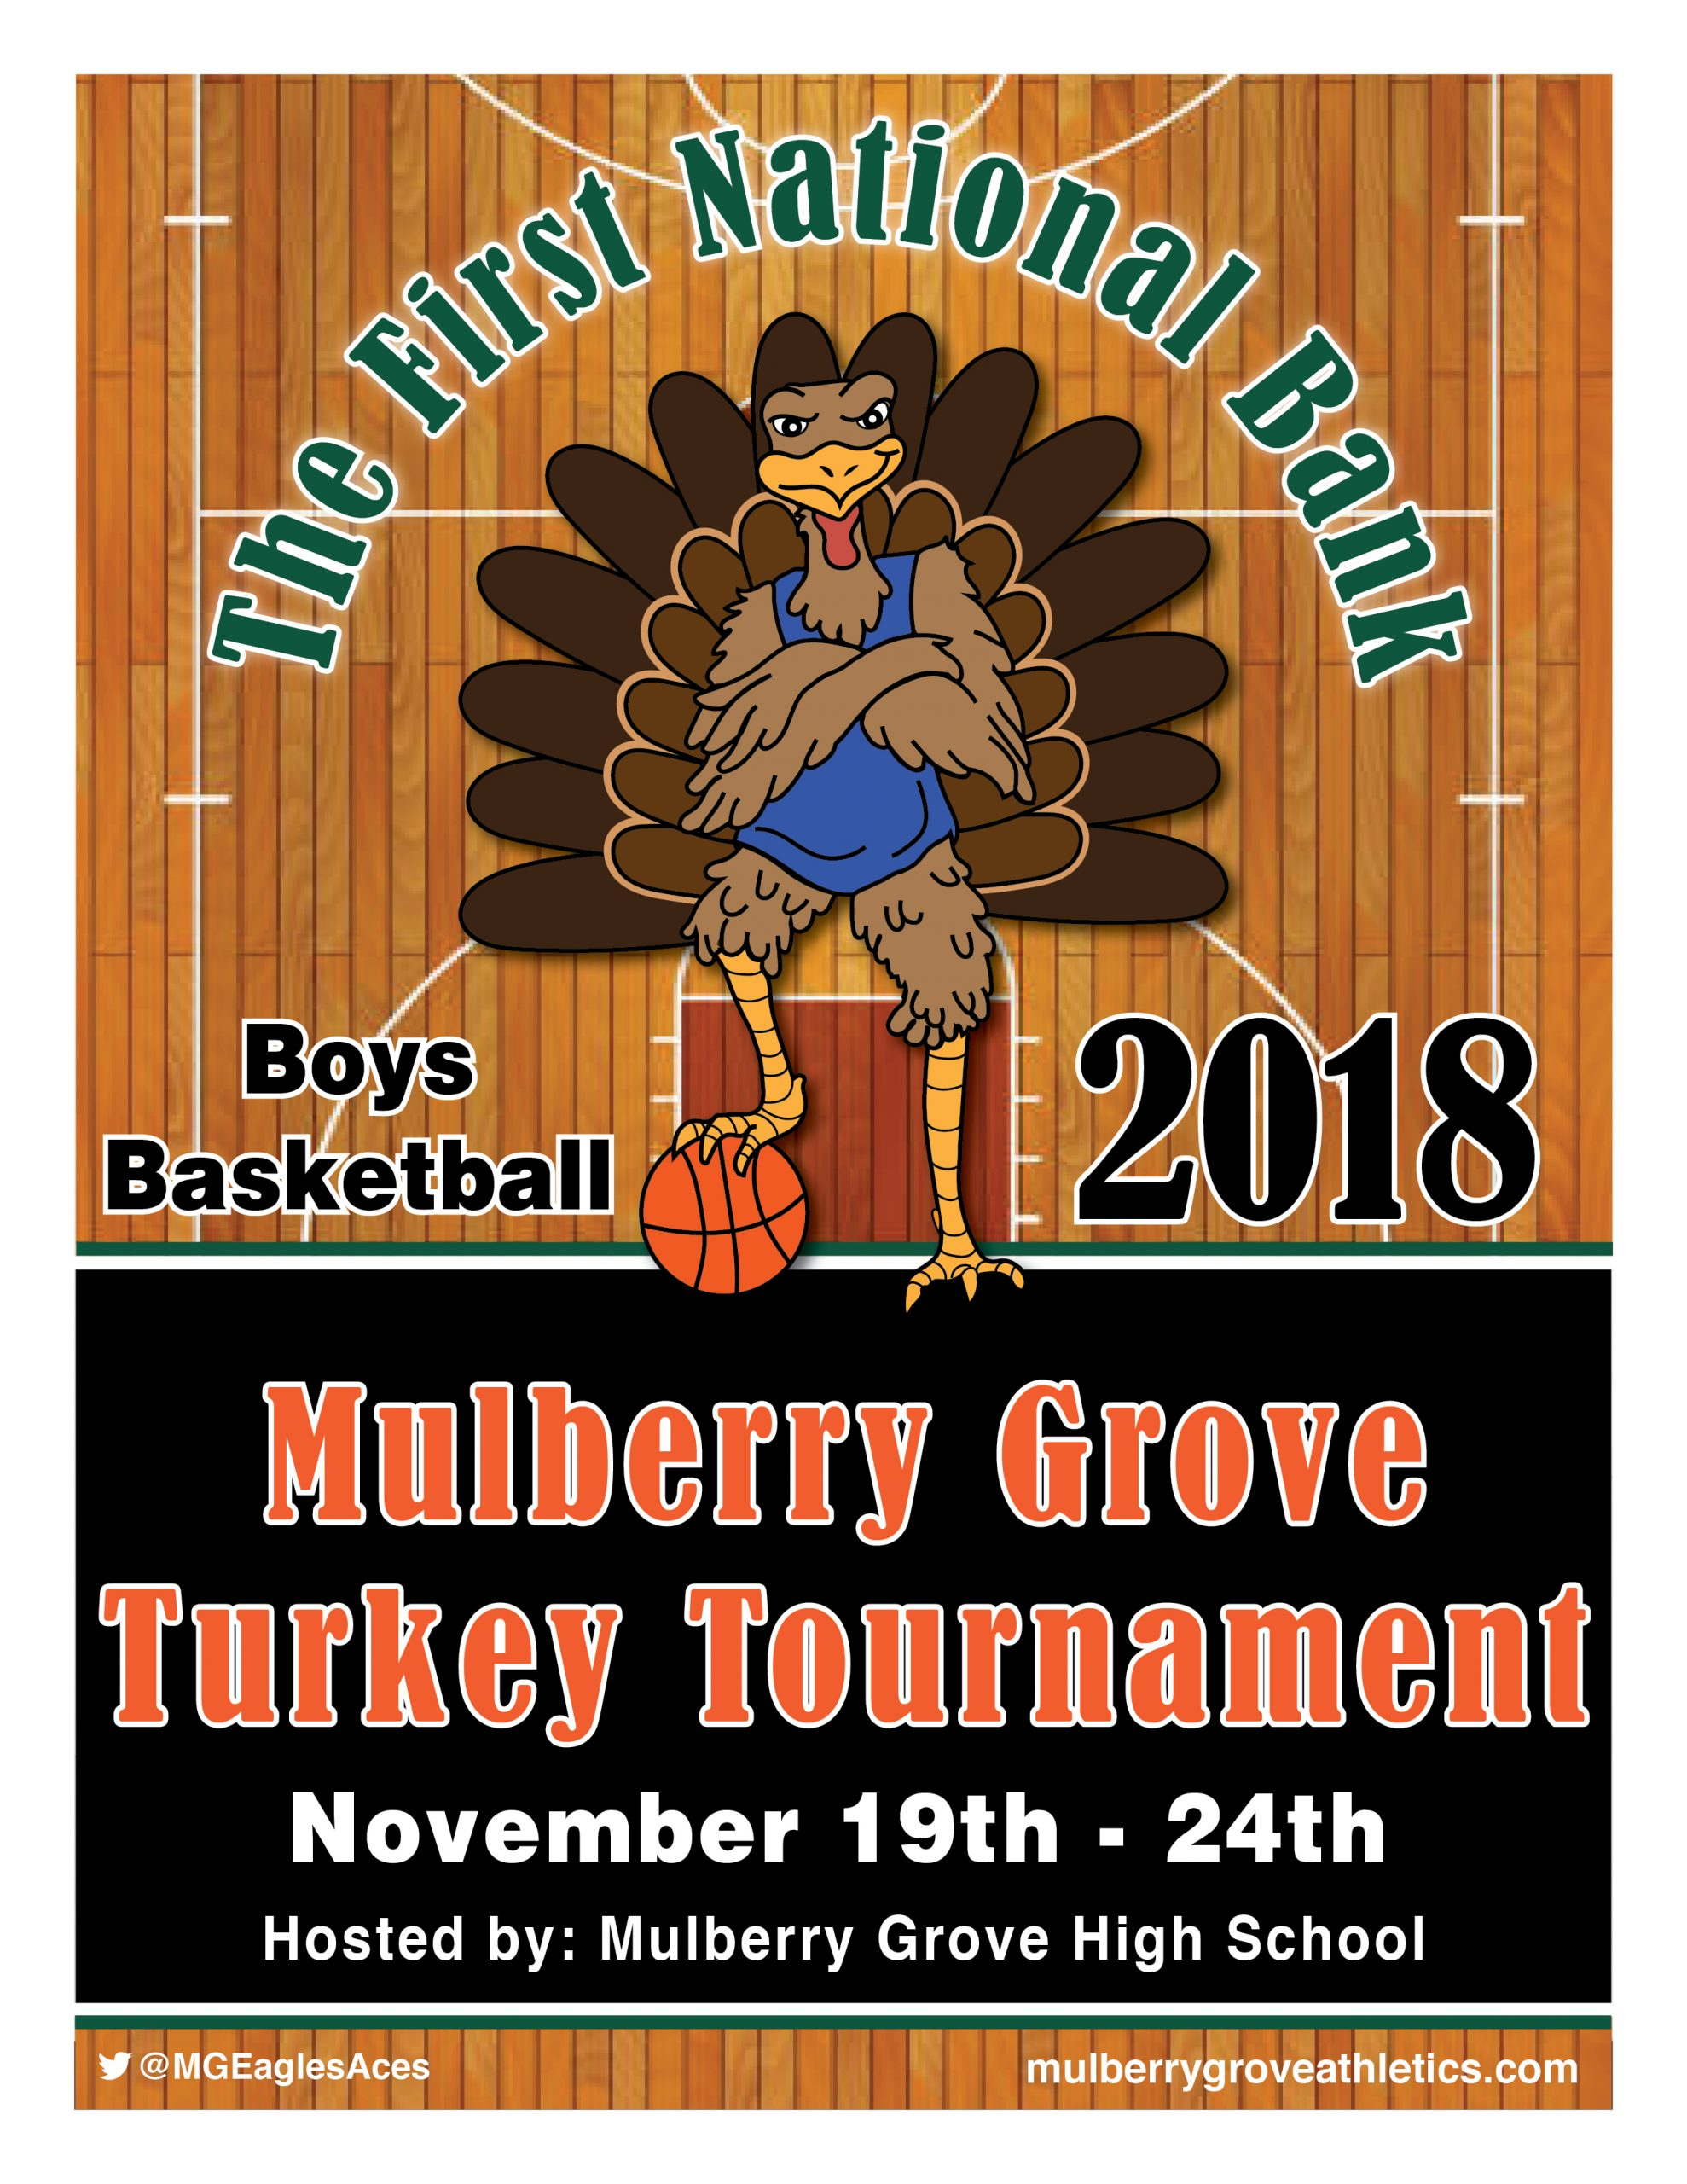 CHBC, South Central and SEB Win on Night One of Mulberry Grove Thanksgiving Tournament